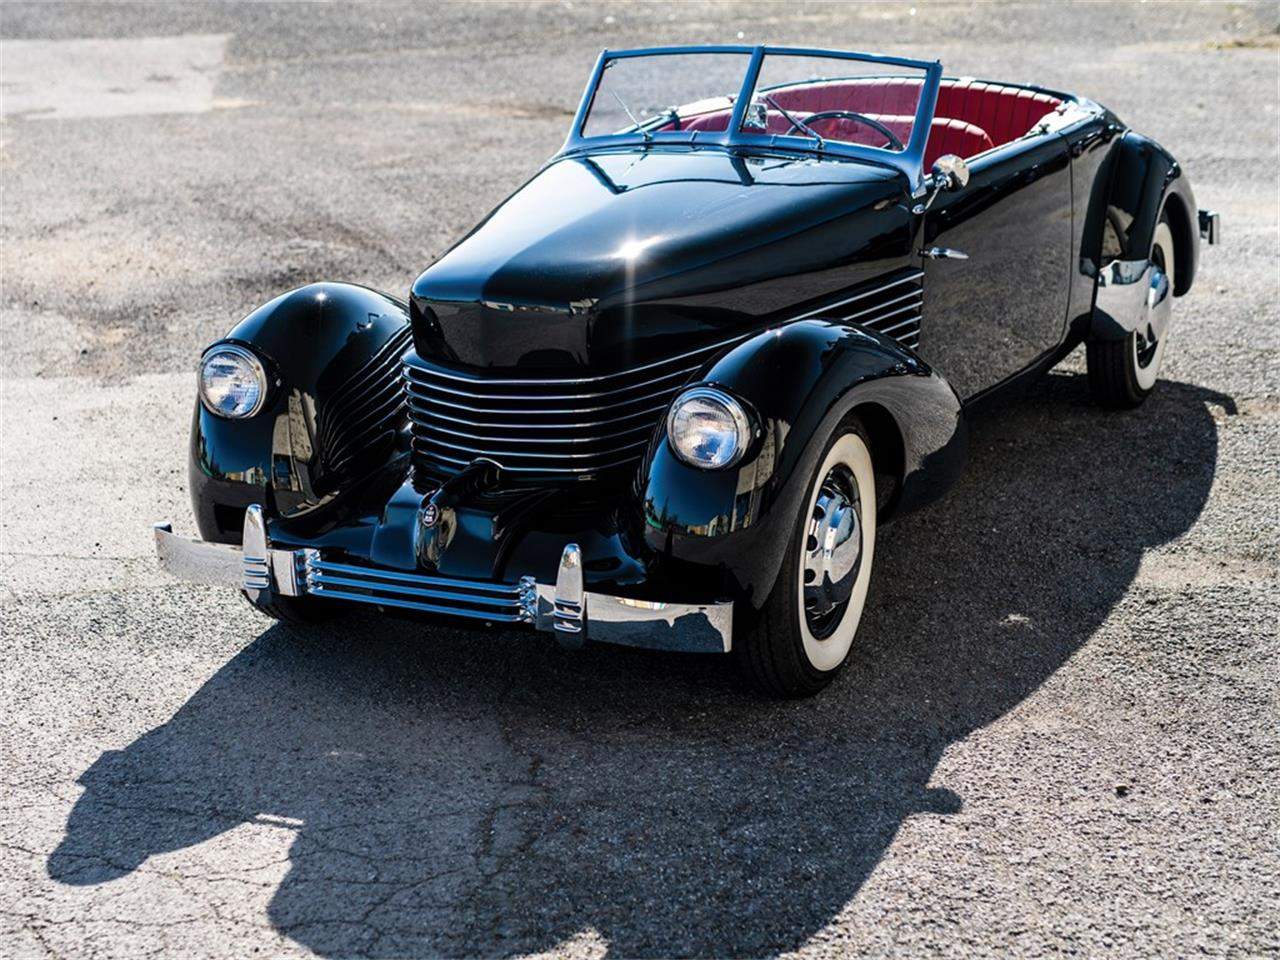 1936 Cord Phaeton for sale in Essen, Other – photo 7